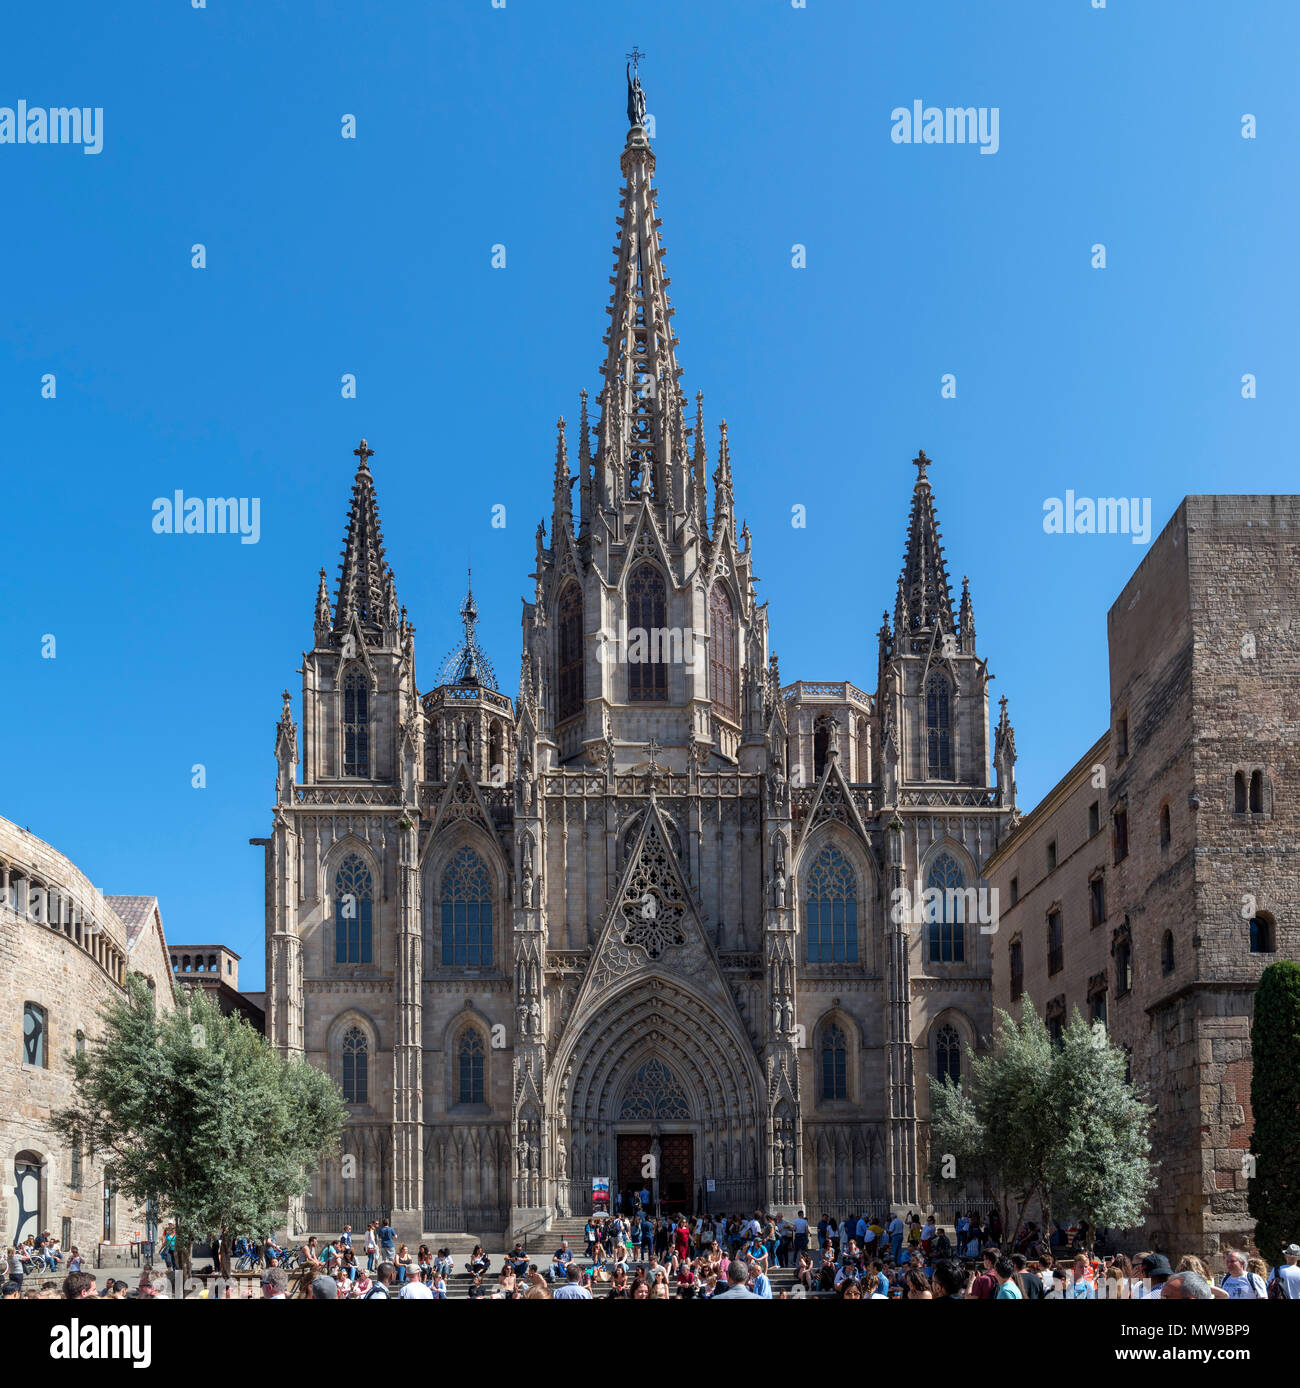 Barcelona Cathedral. The Cathedral of the Holy Cross and Saint Eulalia from Placa de la Seu, Barri Gotic, Barcelona, Spain - Stock Image